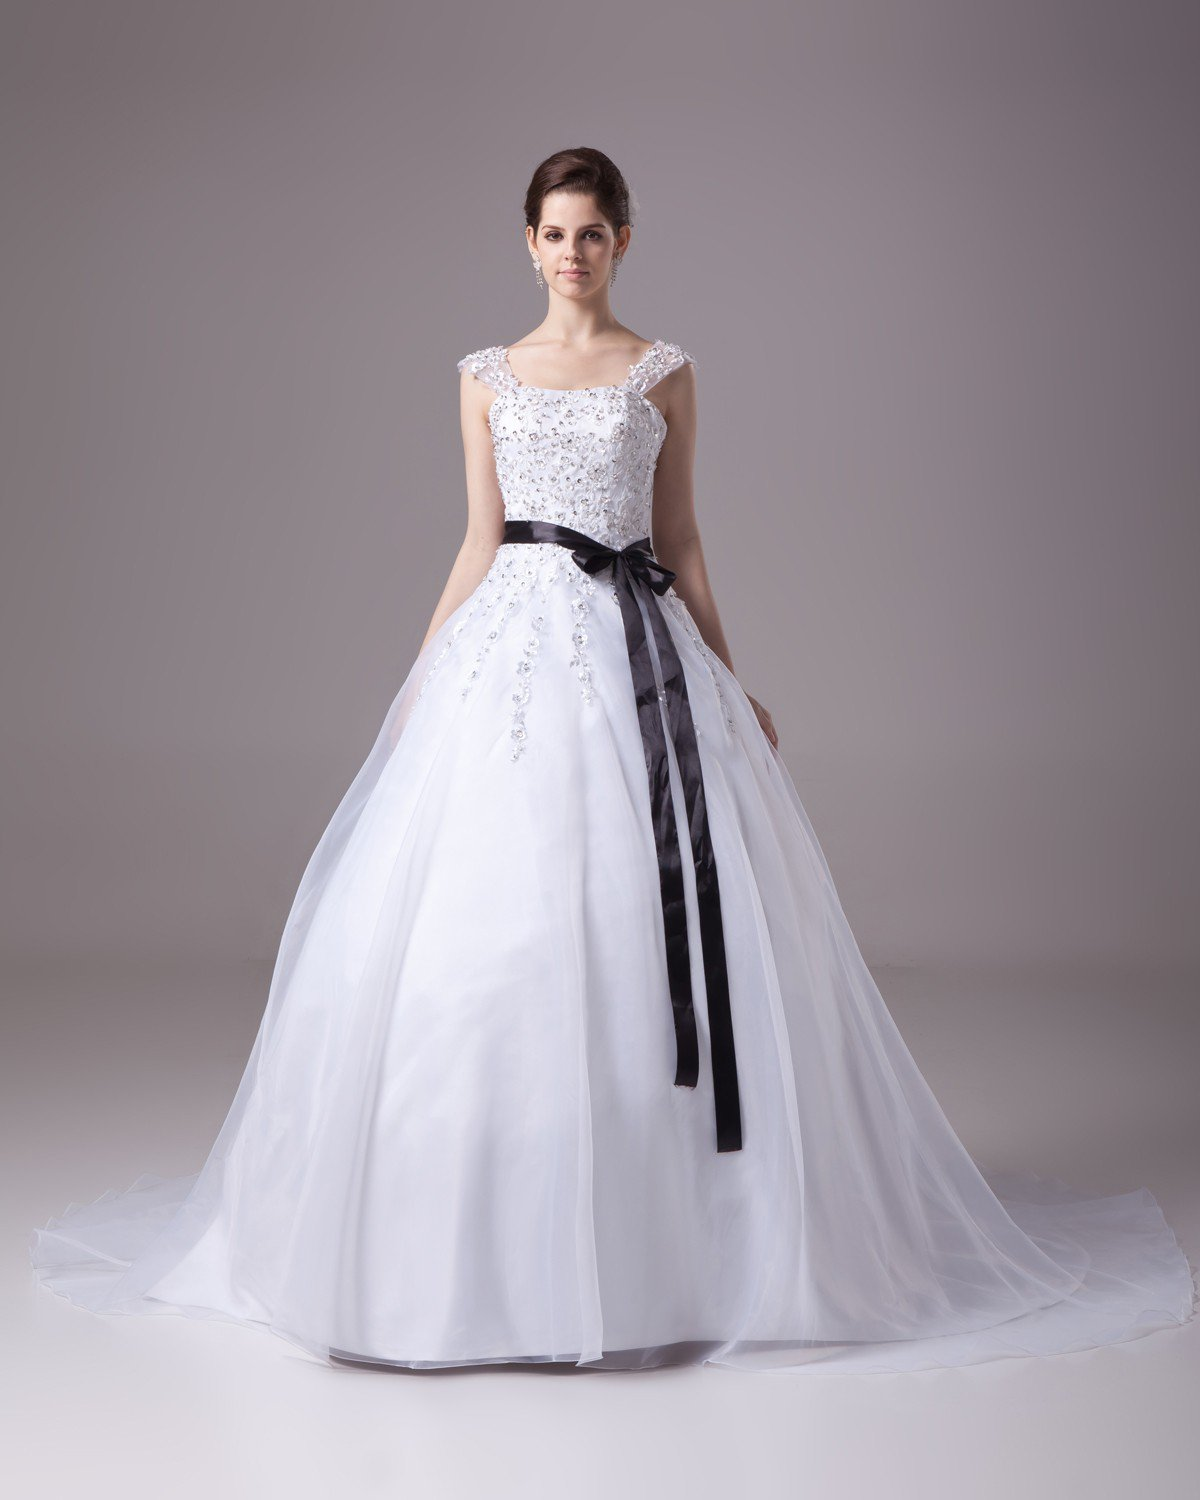 Square Floor Length Beading Applique Satin Yarn Ball Gown Wedding Dress